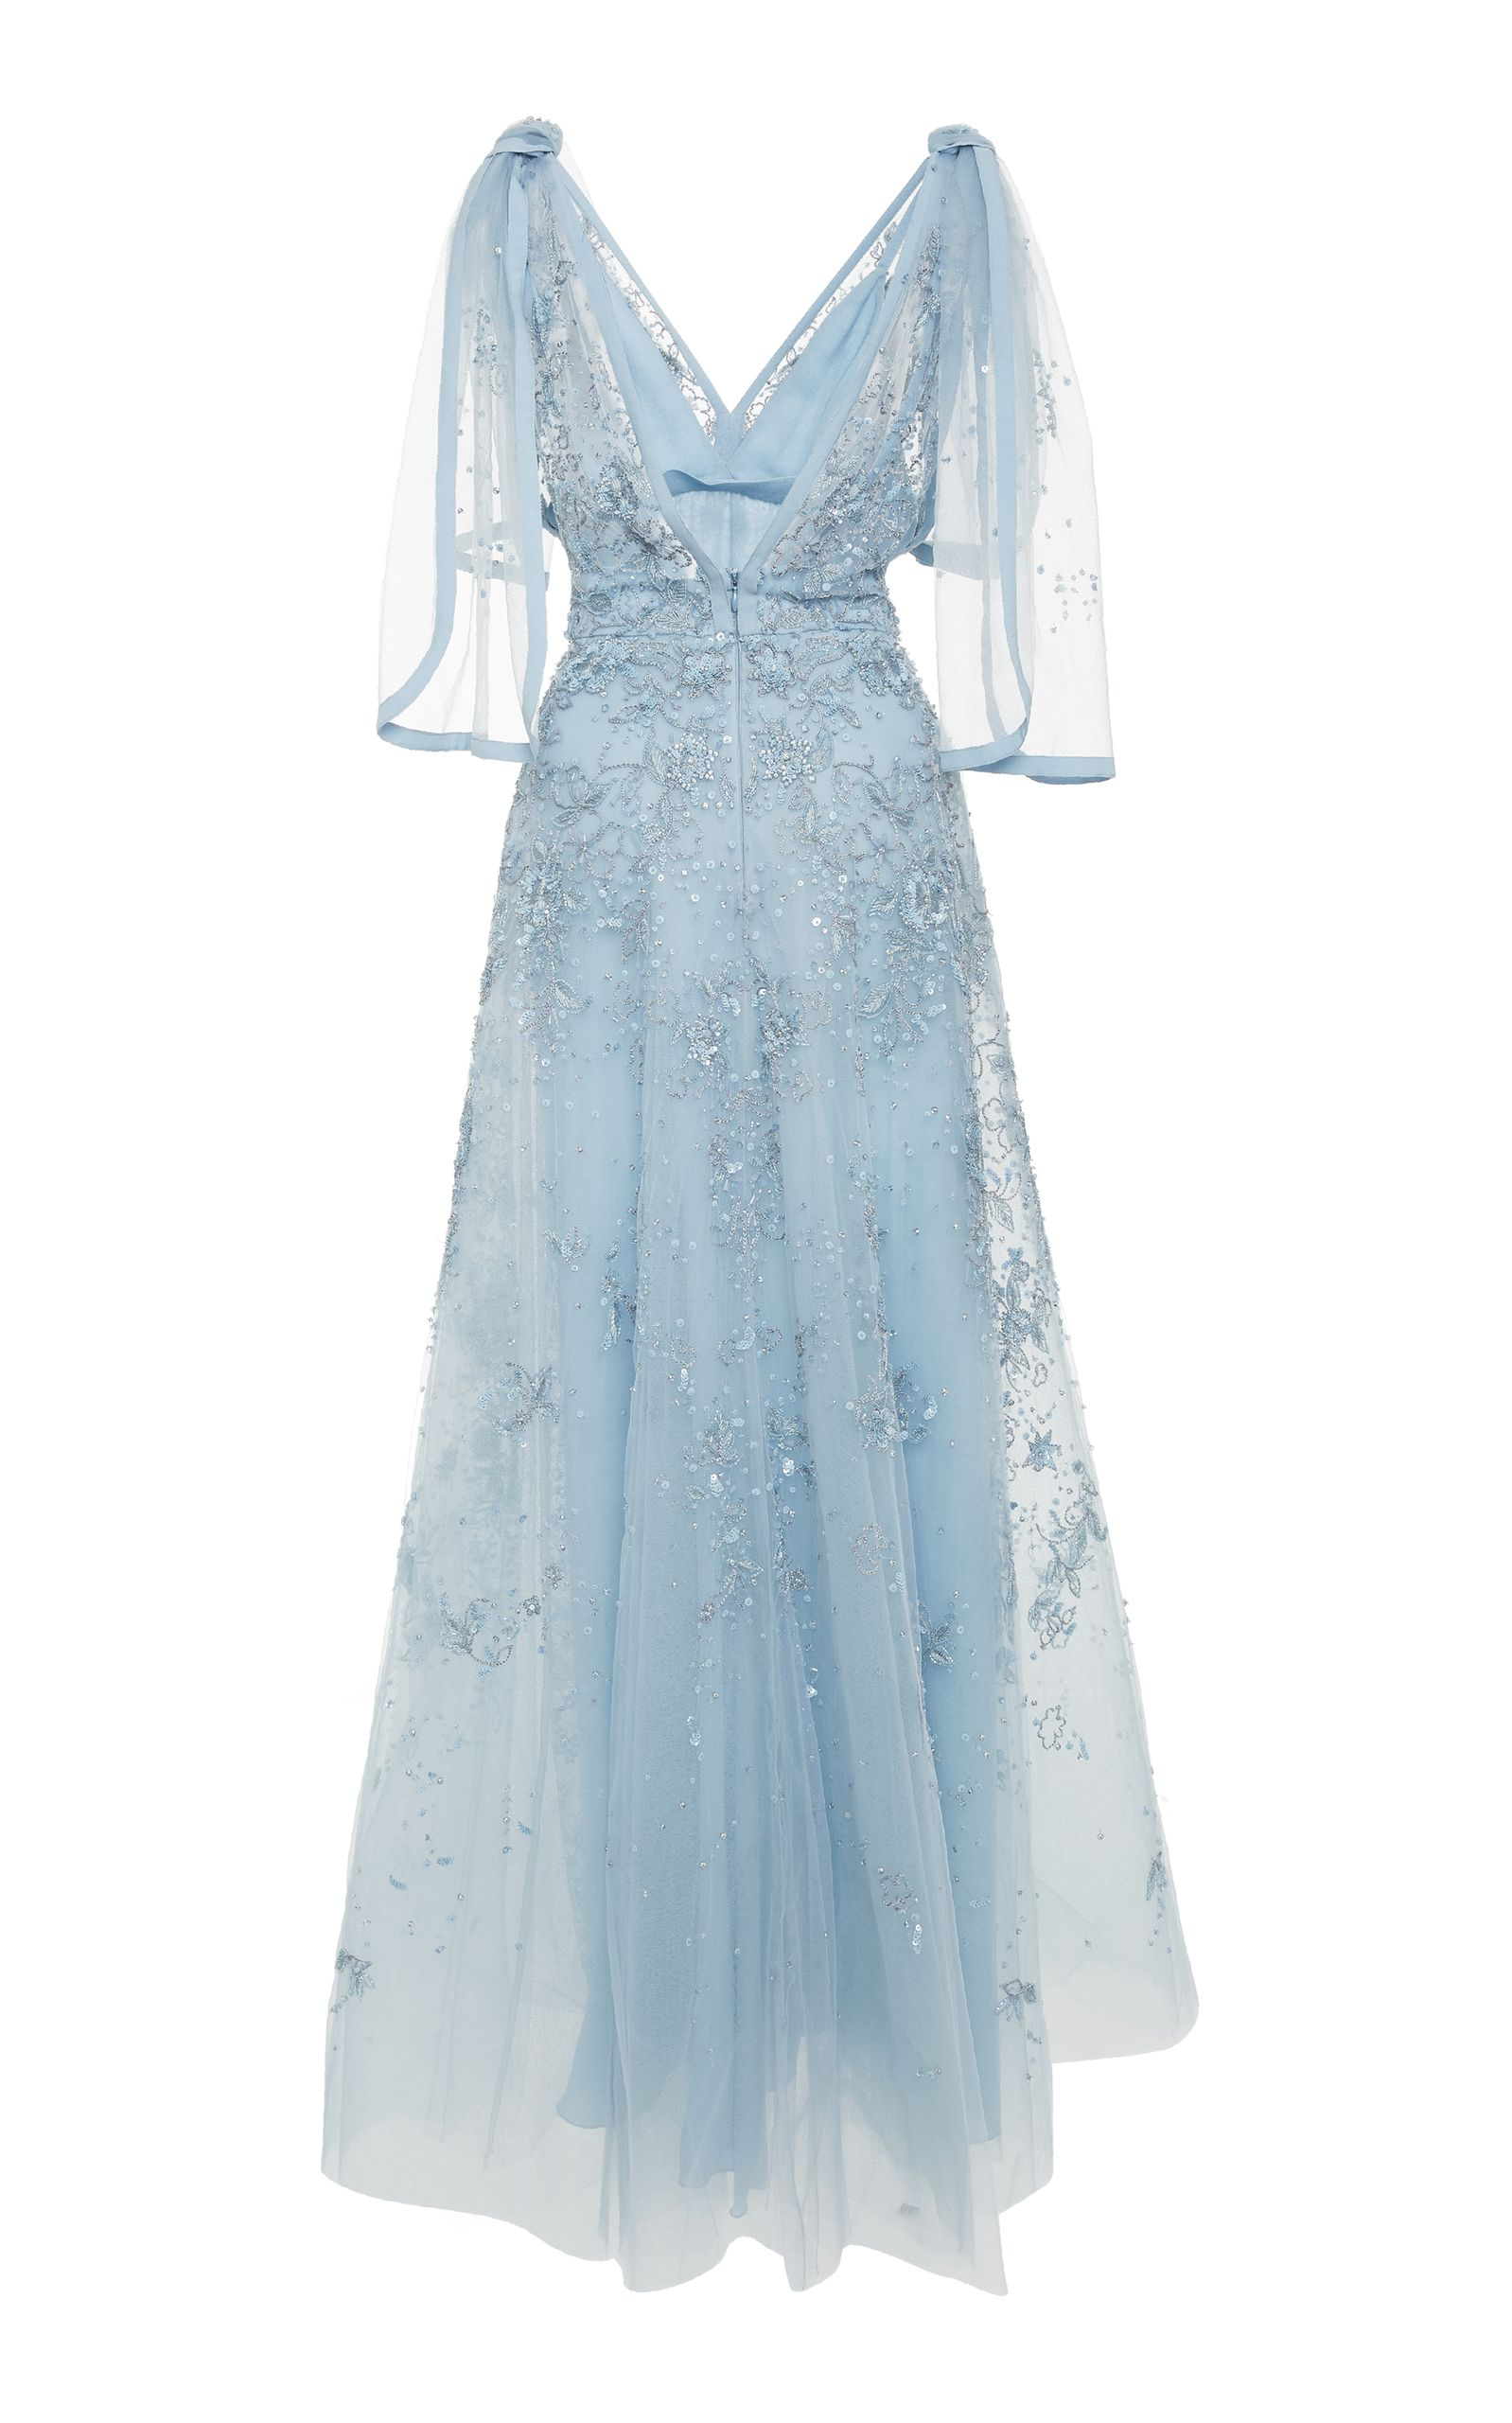 Elie Saab Embroidered Dress With Knotted Shoulders | La coleccion ...